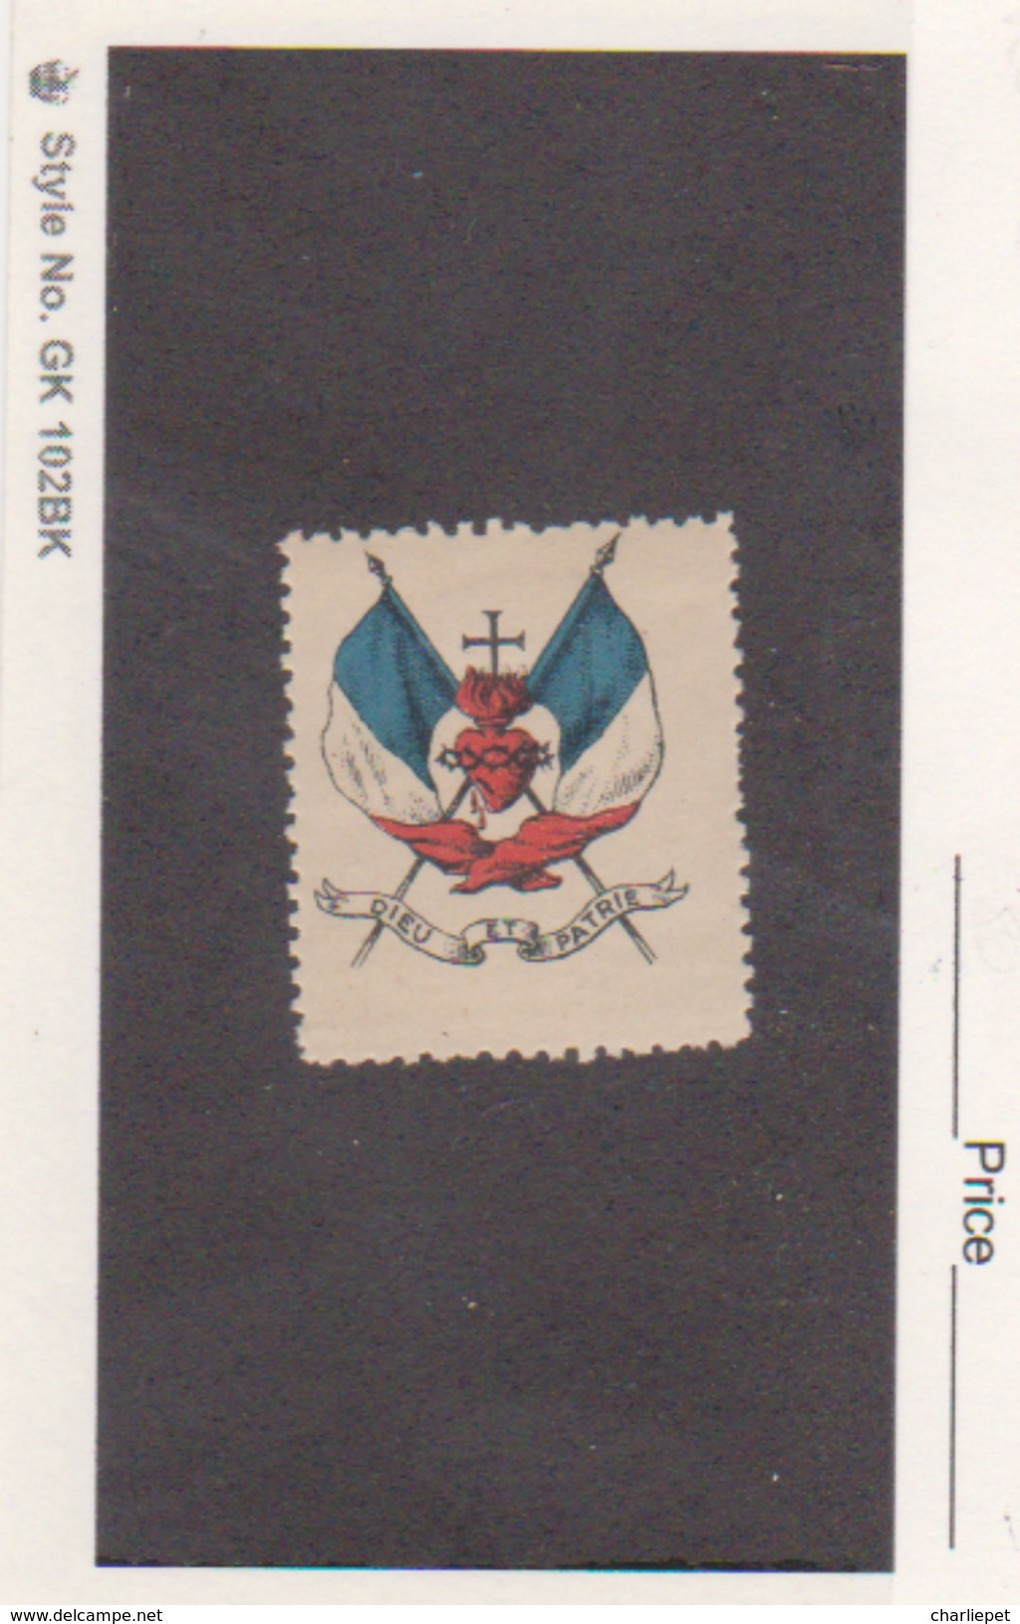 France WWI 2 Crossed French Flags Dieu Et Patrie Stamps Vignette Poster Stamp - Commemorative Labels